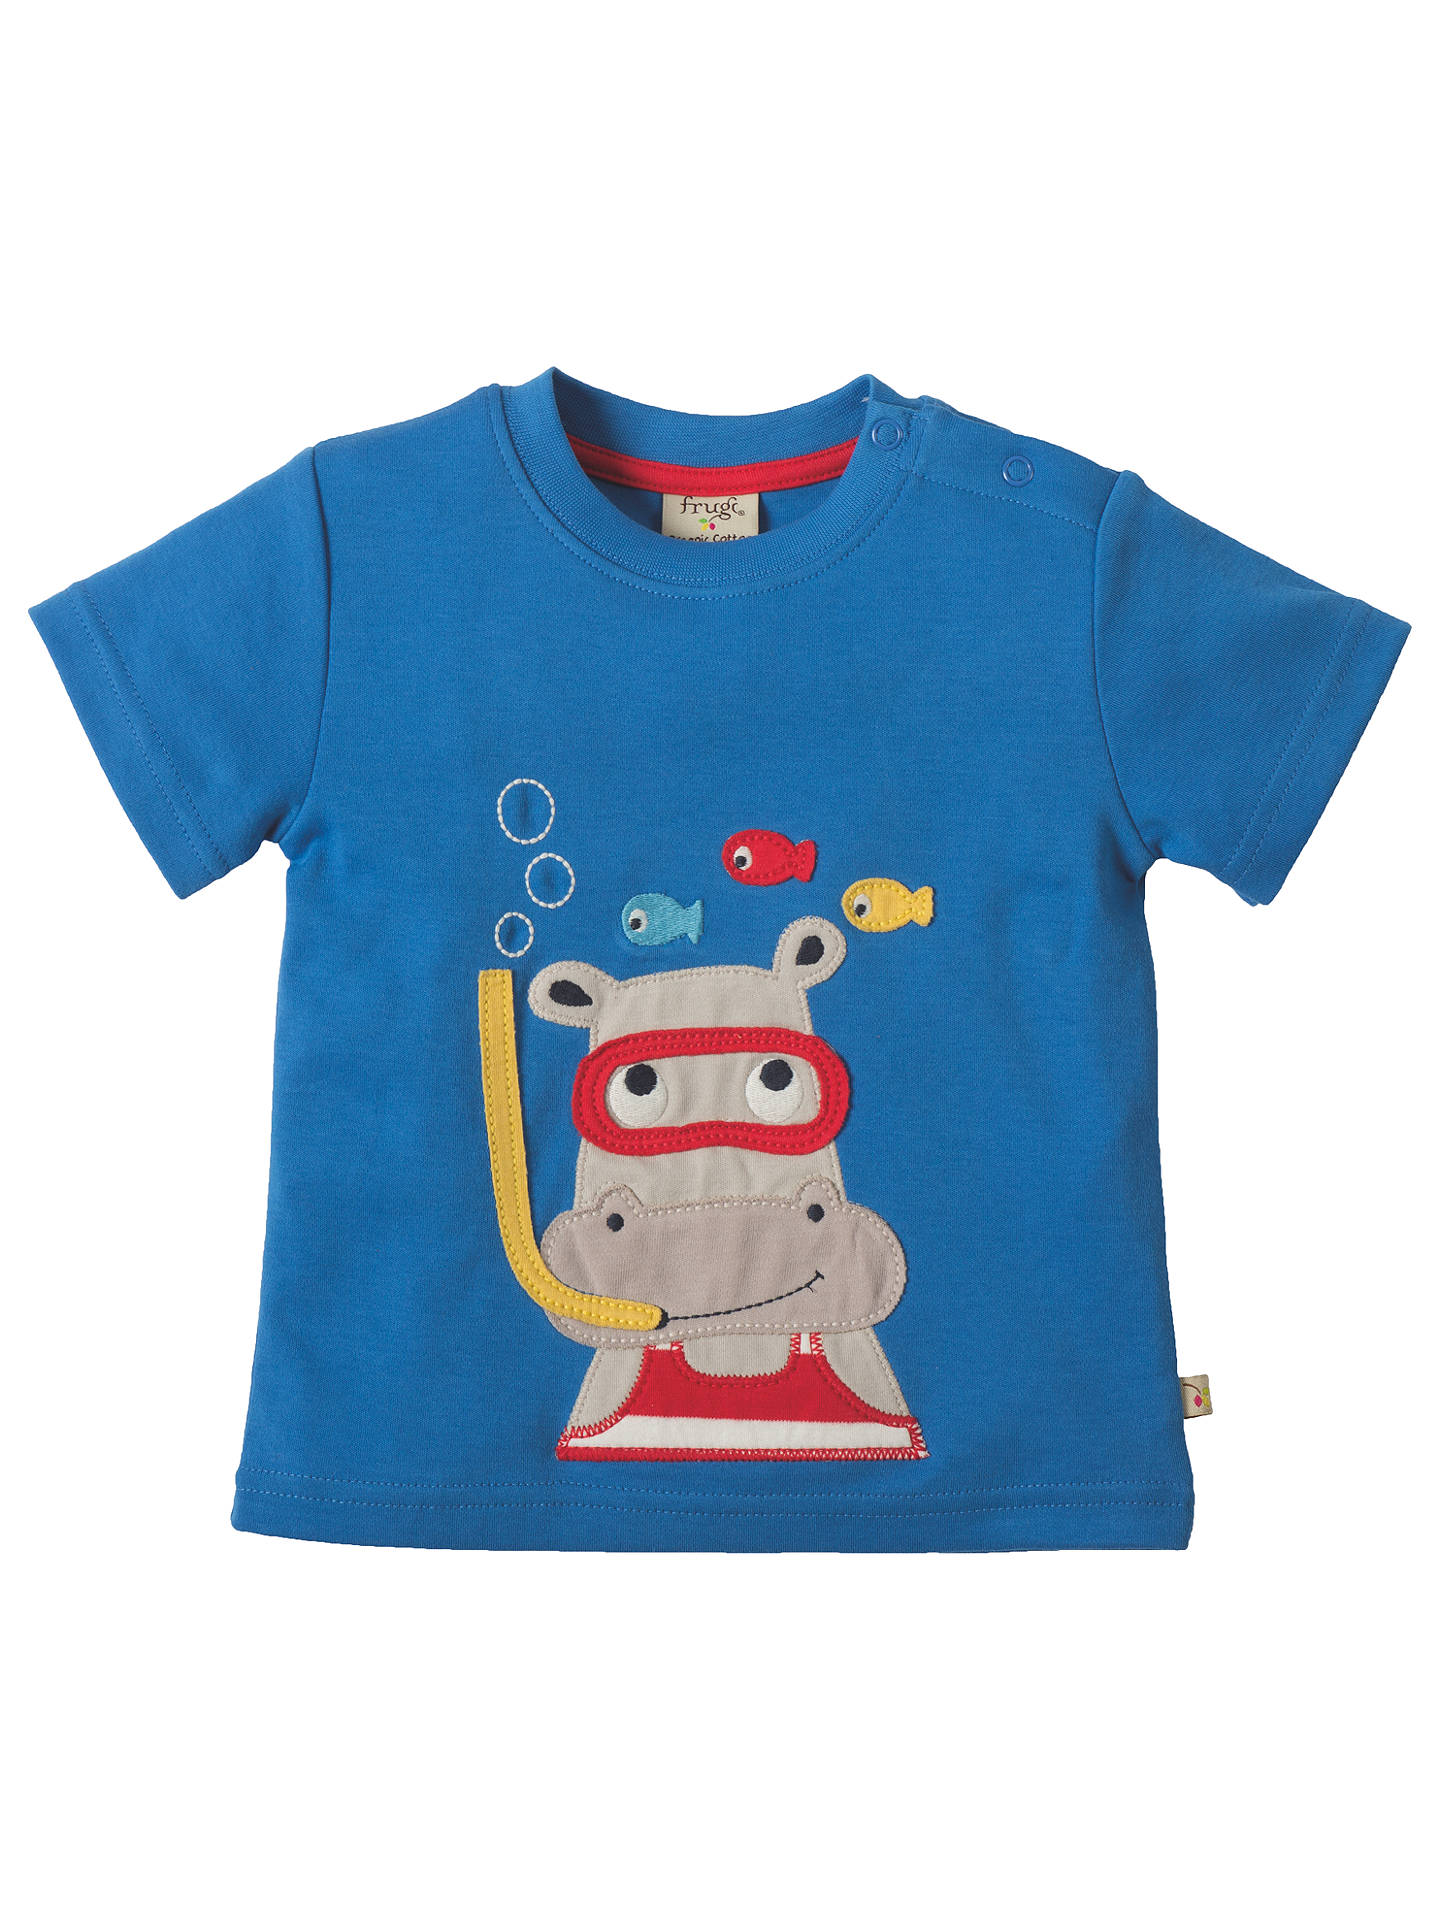 da0e83309641 Frugi Organic Baby Little Creature Hippo Applique T-Shirt